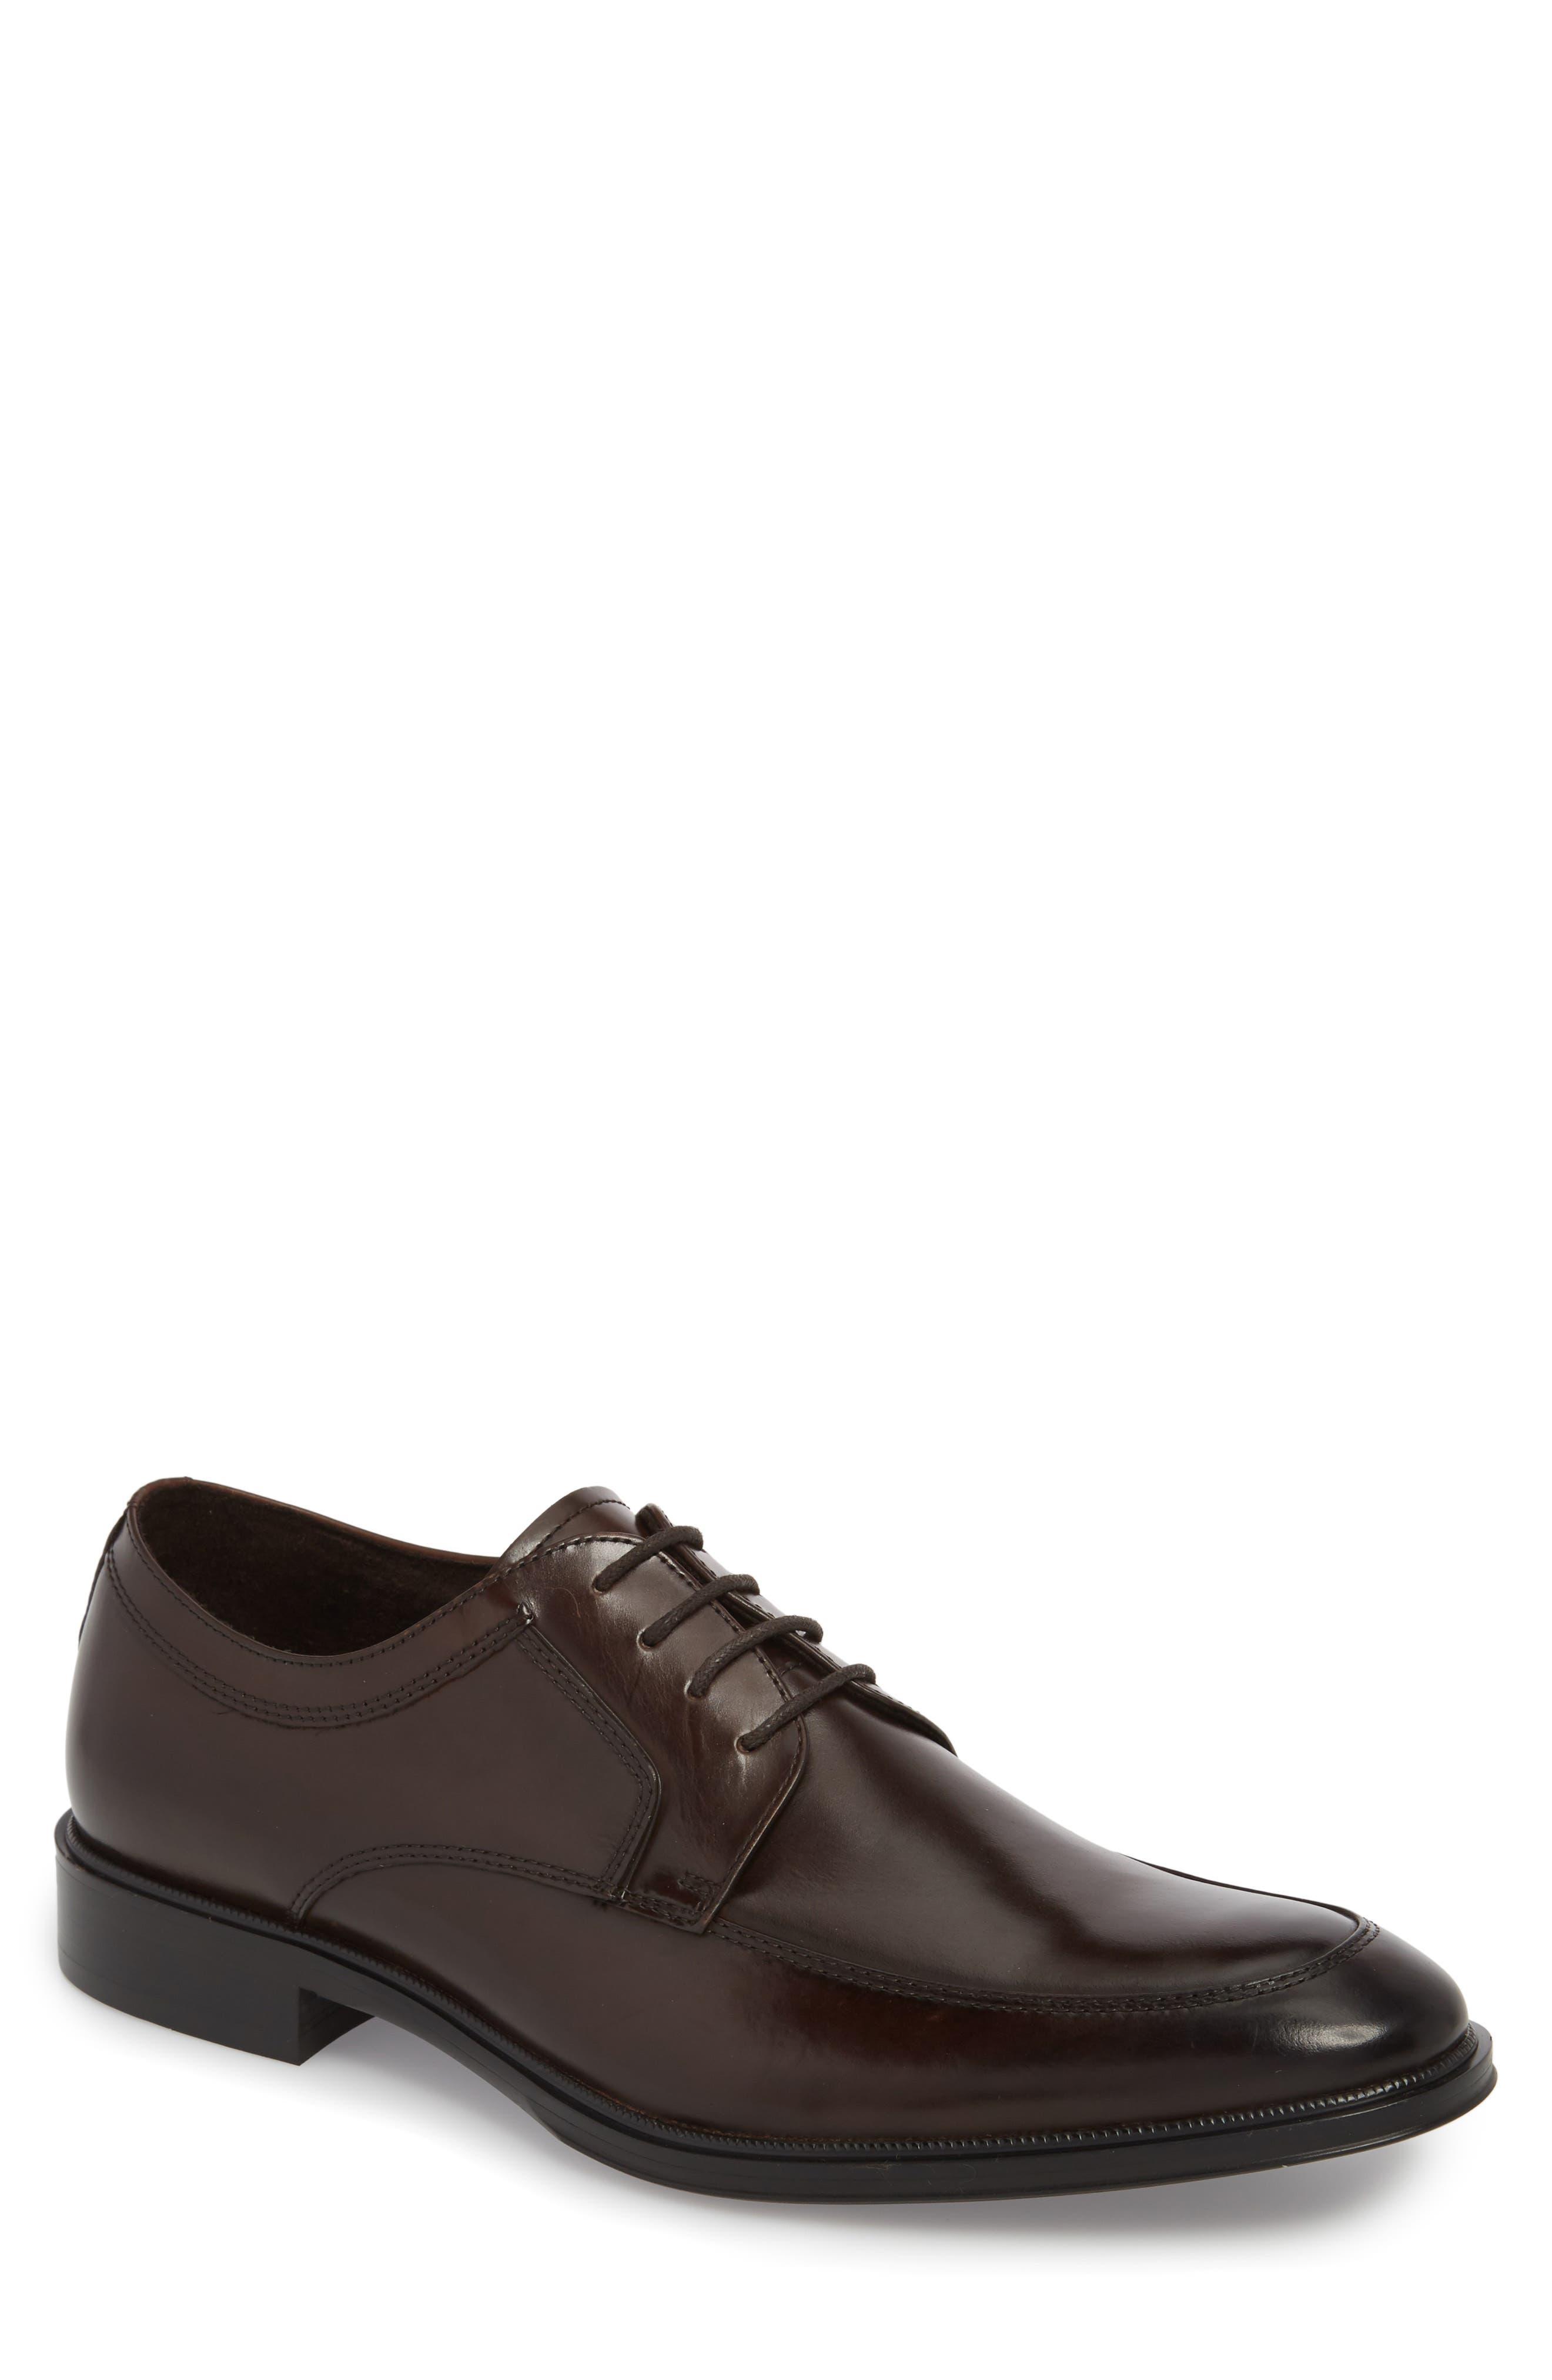 Kenneth Cole New York Tully Apron Toe Derby (Men)